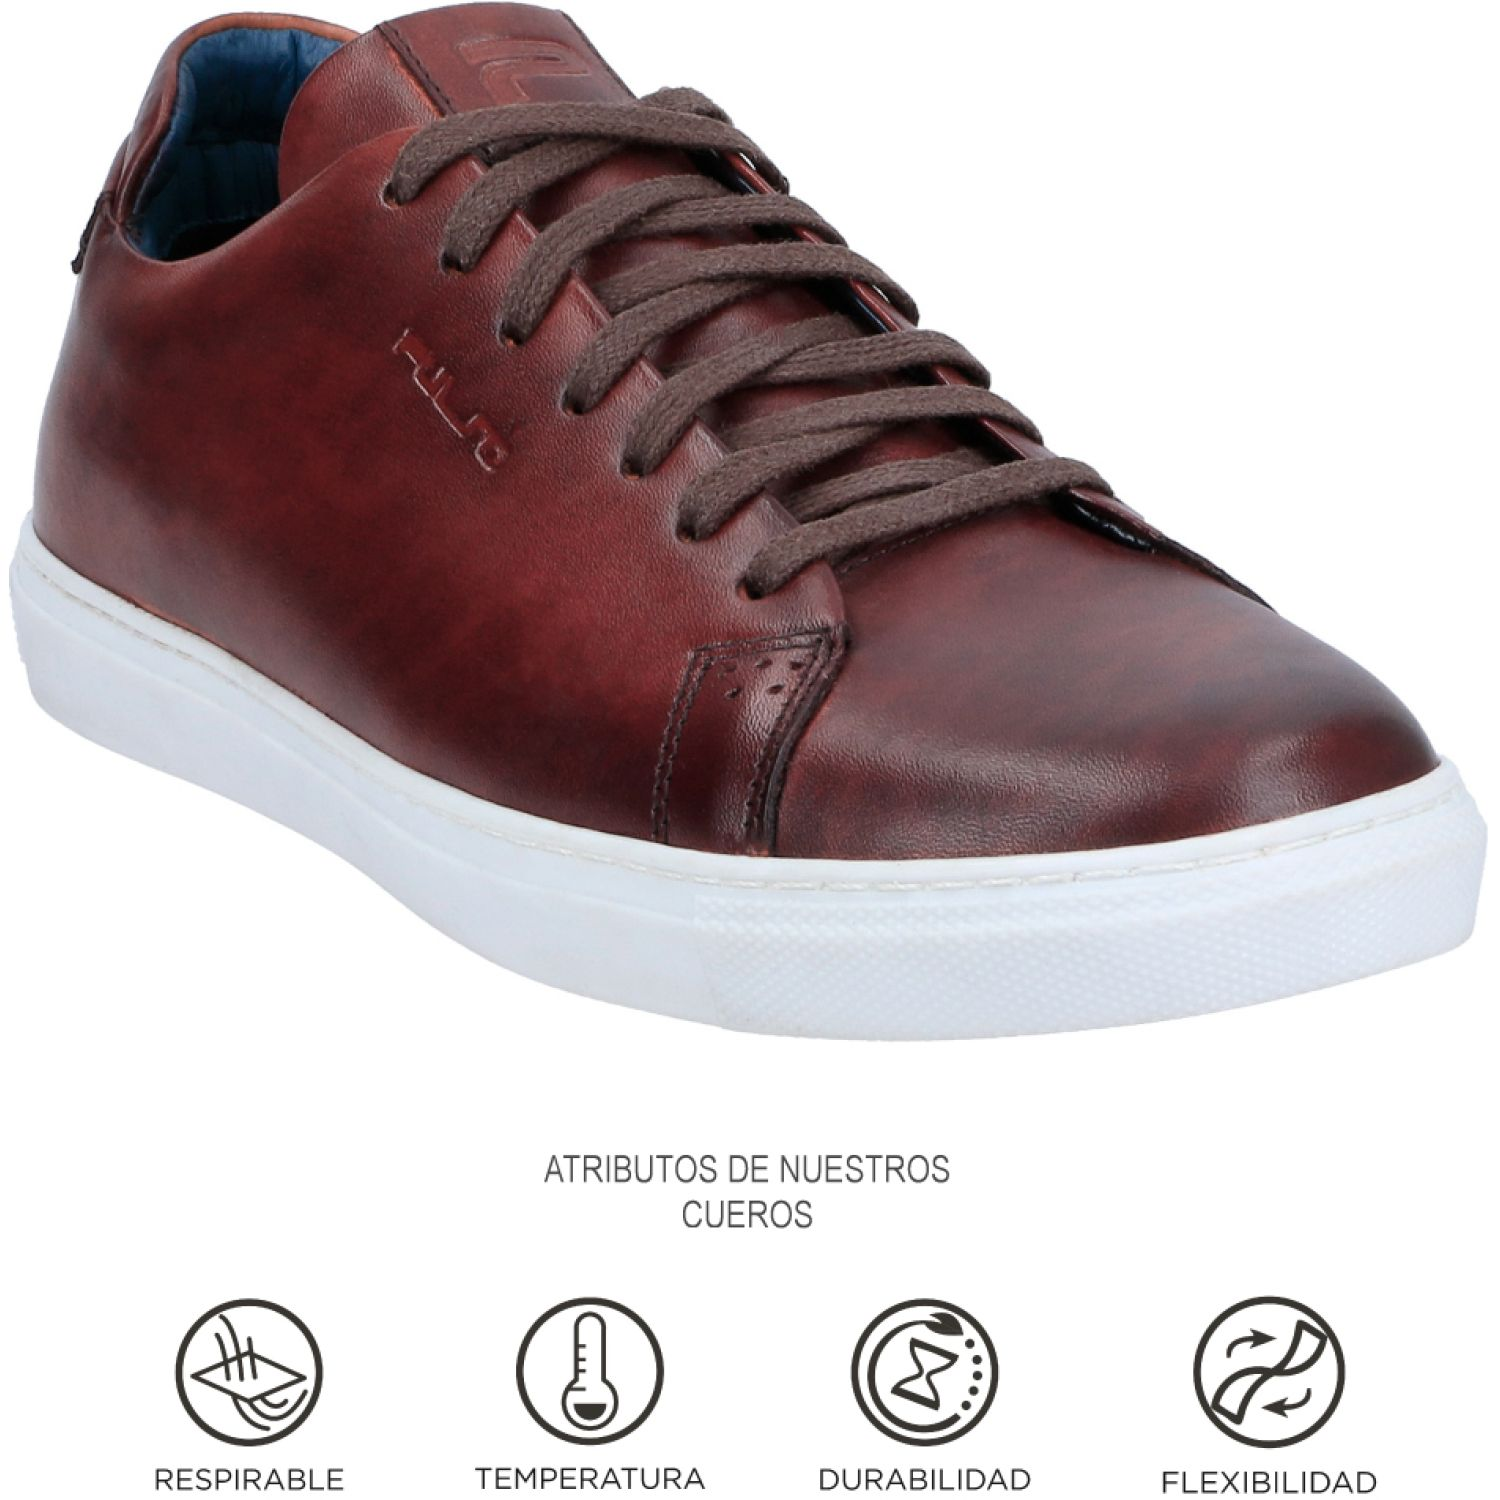 GUANTE GARDA Marron Oxfords